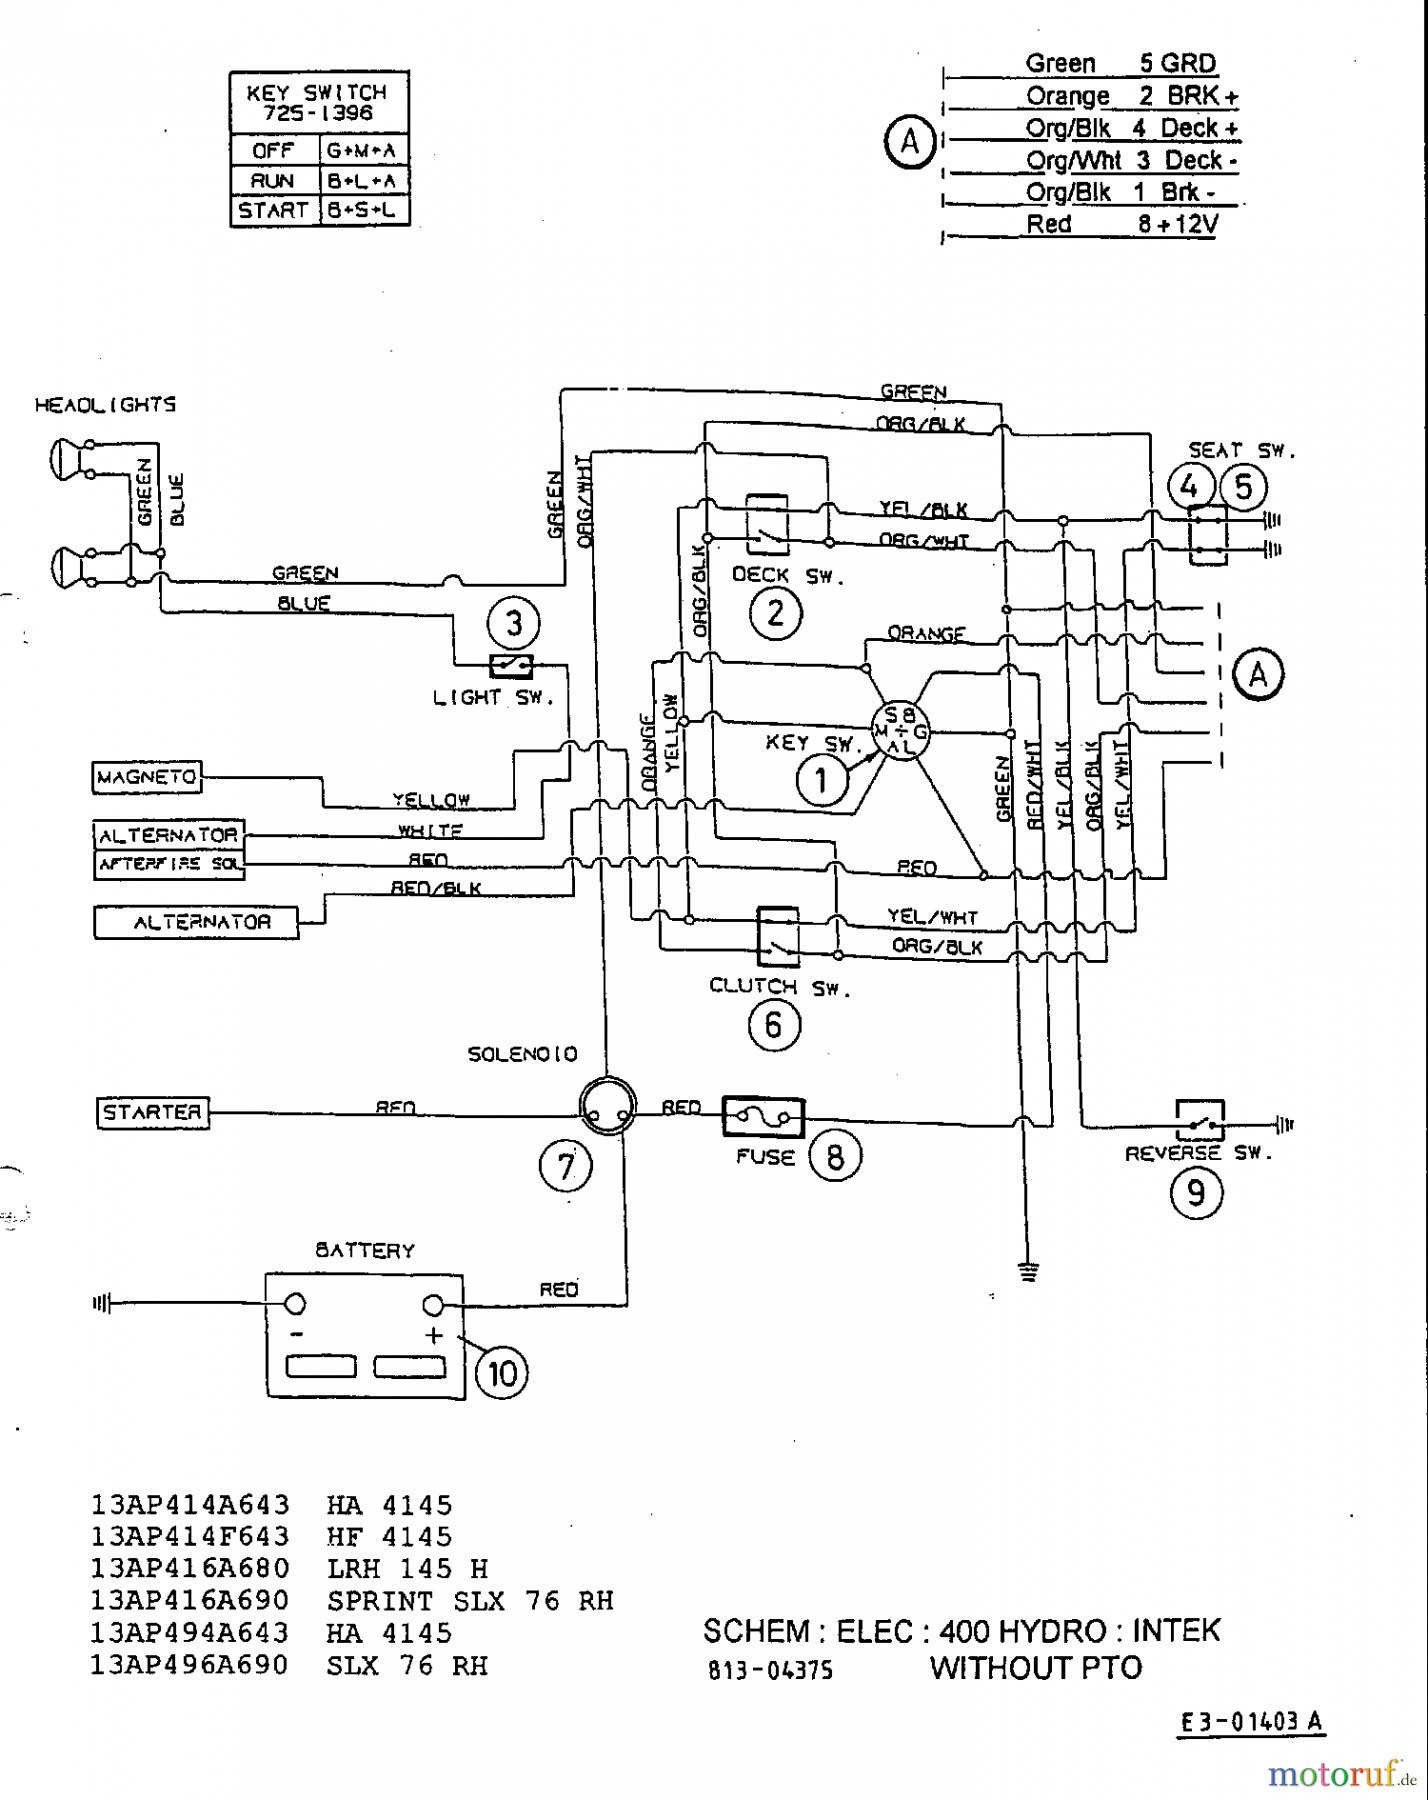 hight resolution of mtd wireing harness diagram wiring diagram paper agway lawn mower wiring diagram